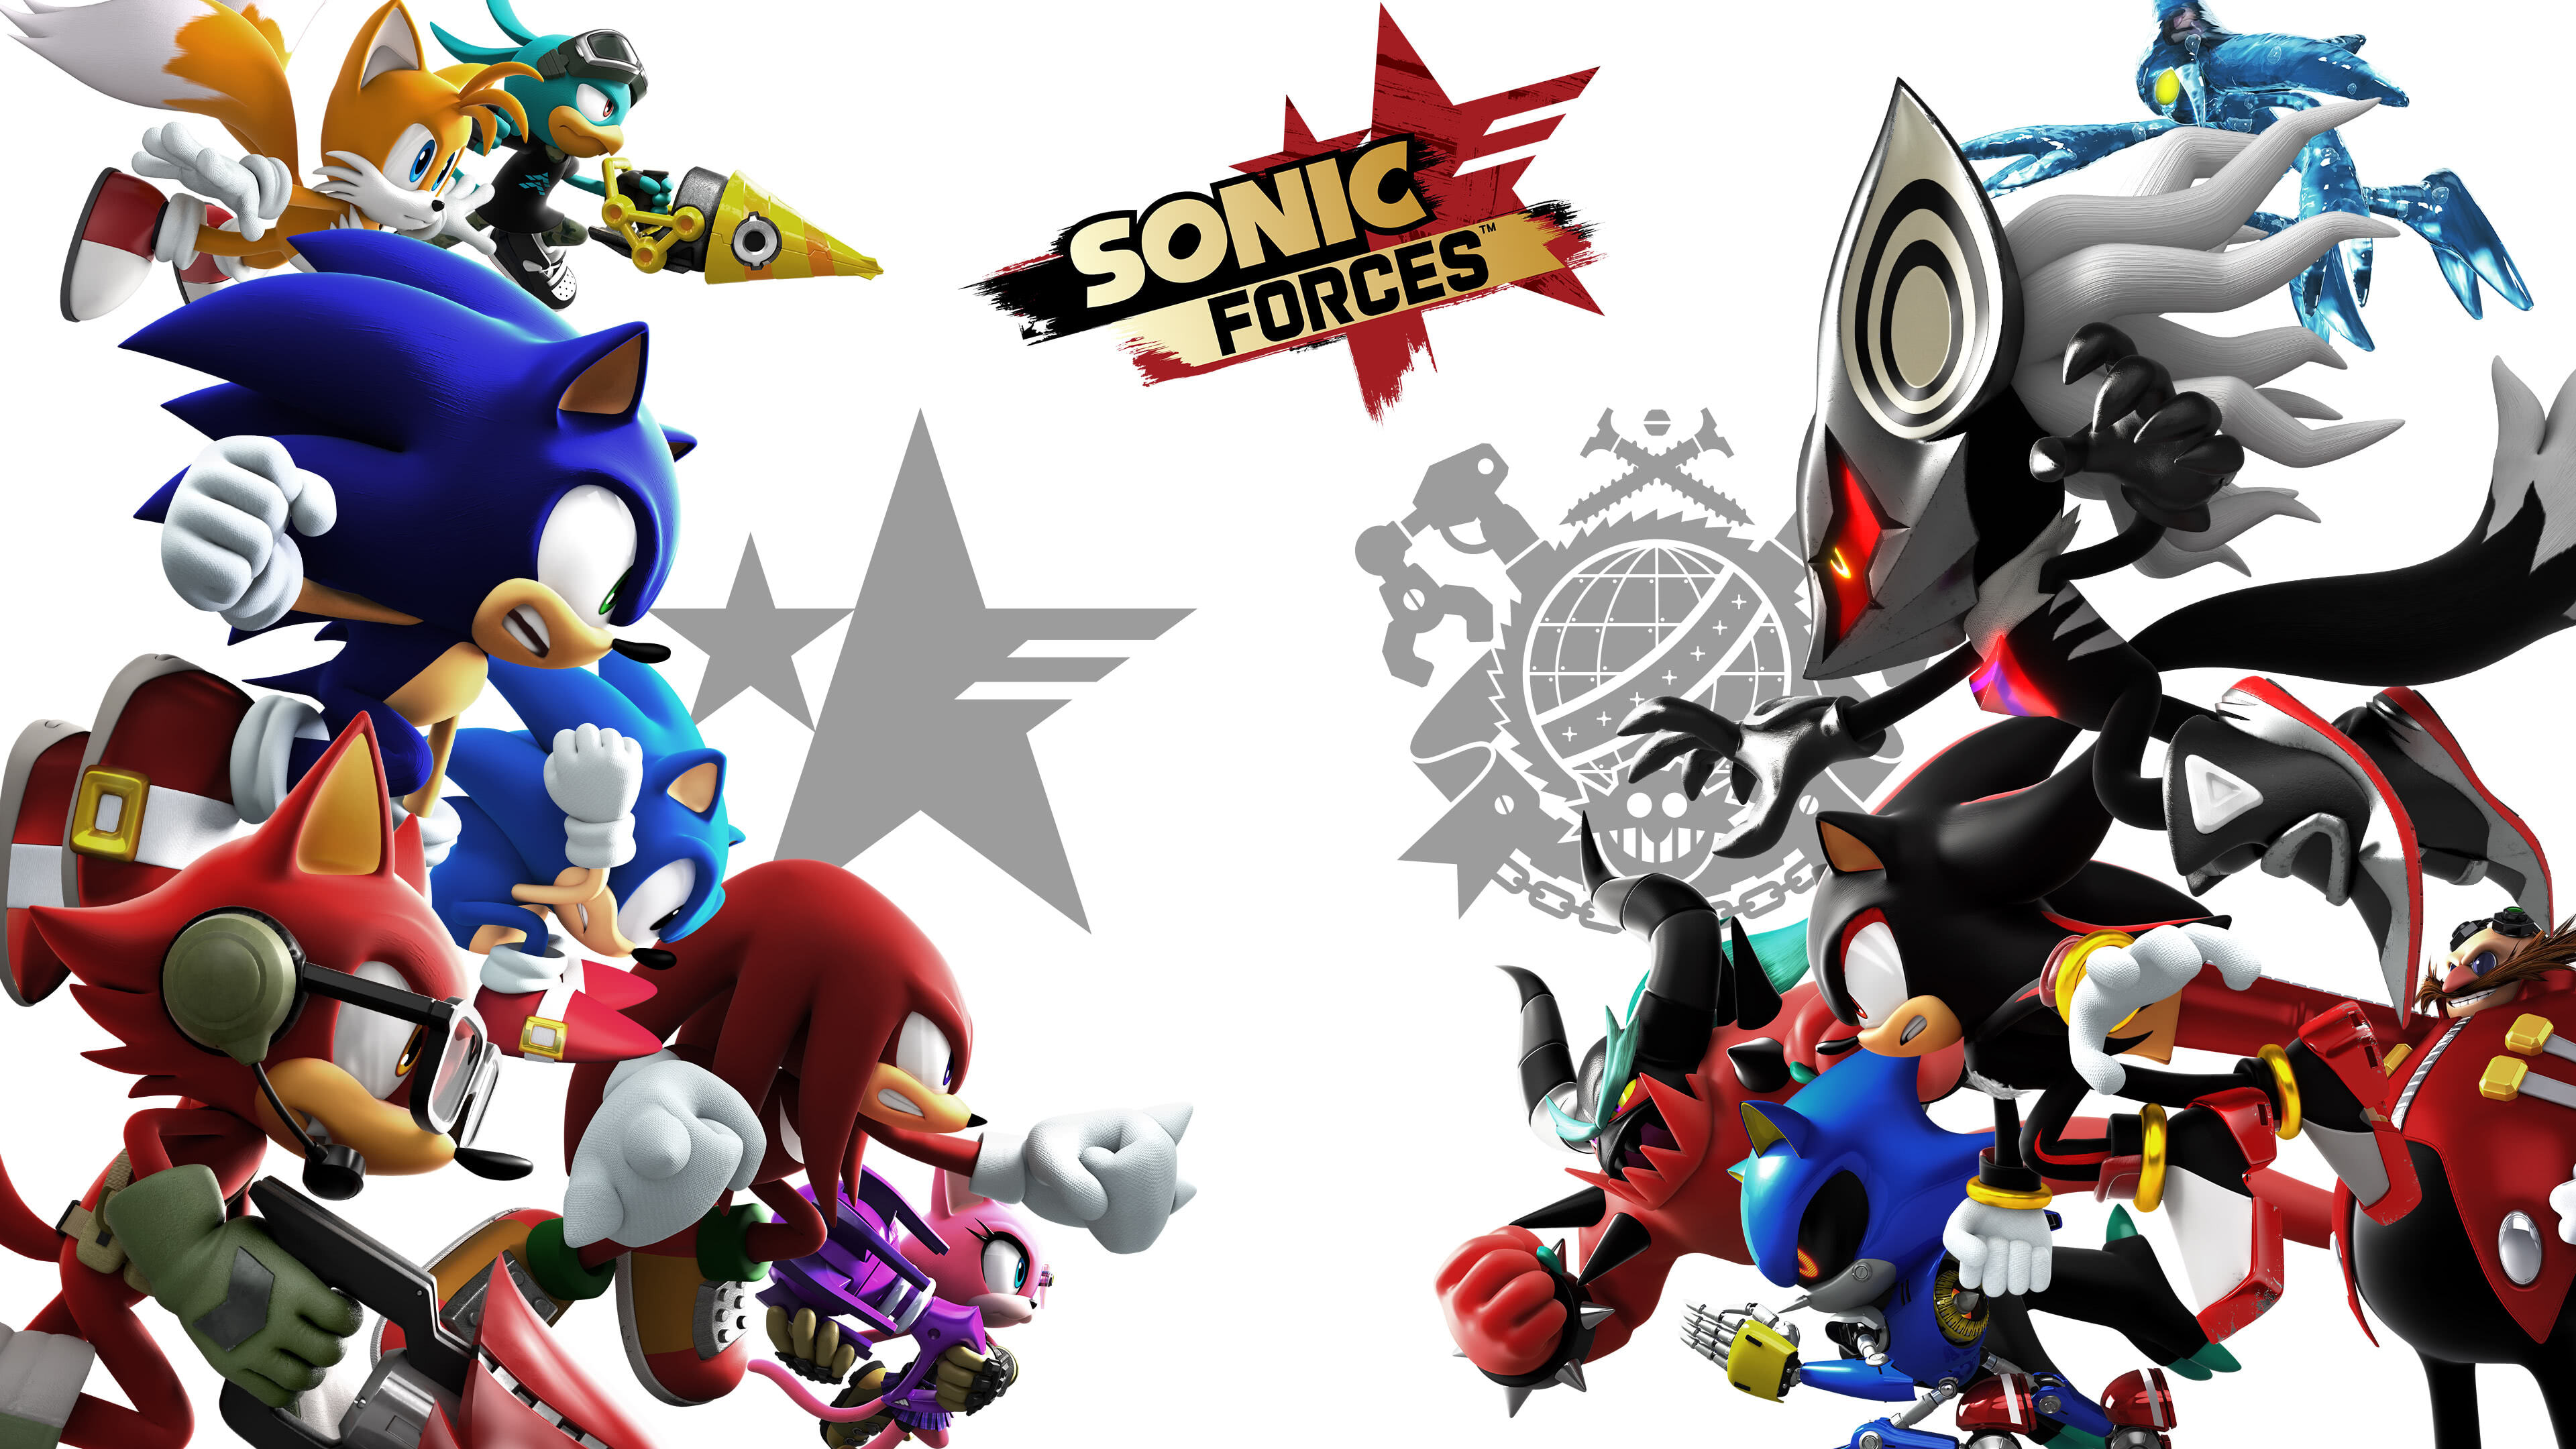 sonic forces characters uhd 4k wallpaper